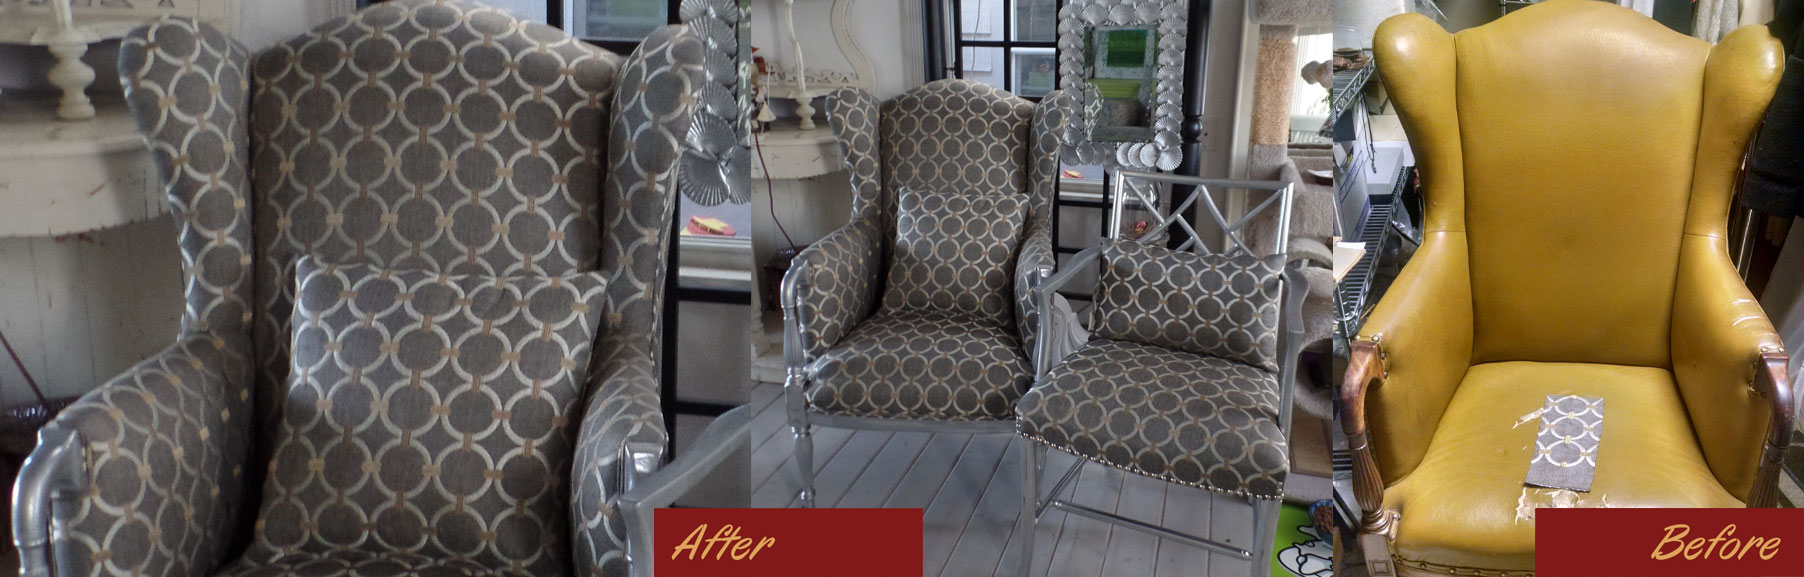 Upholstery Service | Chairs | Couches | Fabric | Leather | Denver | Arvada